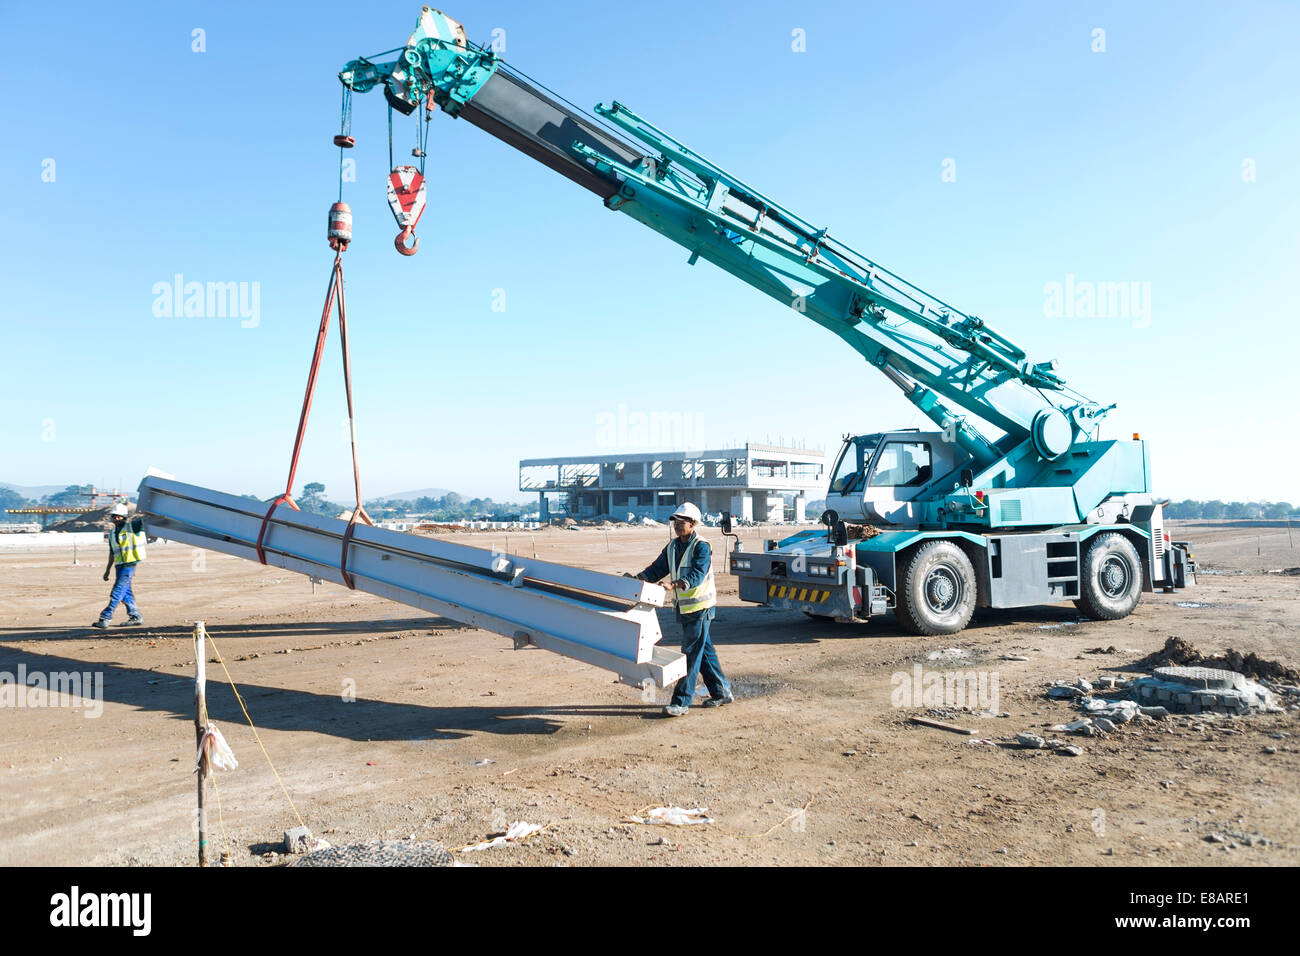 Two builders guiding girders on crane at construction site - Stock Image